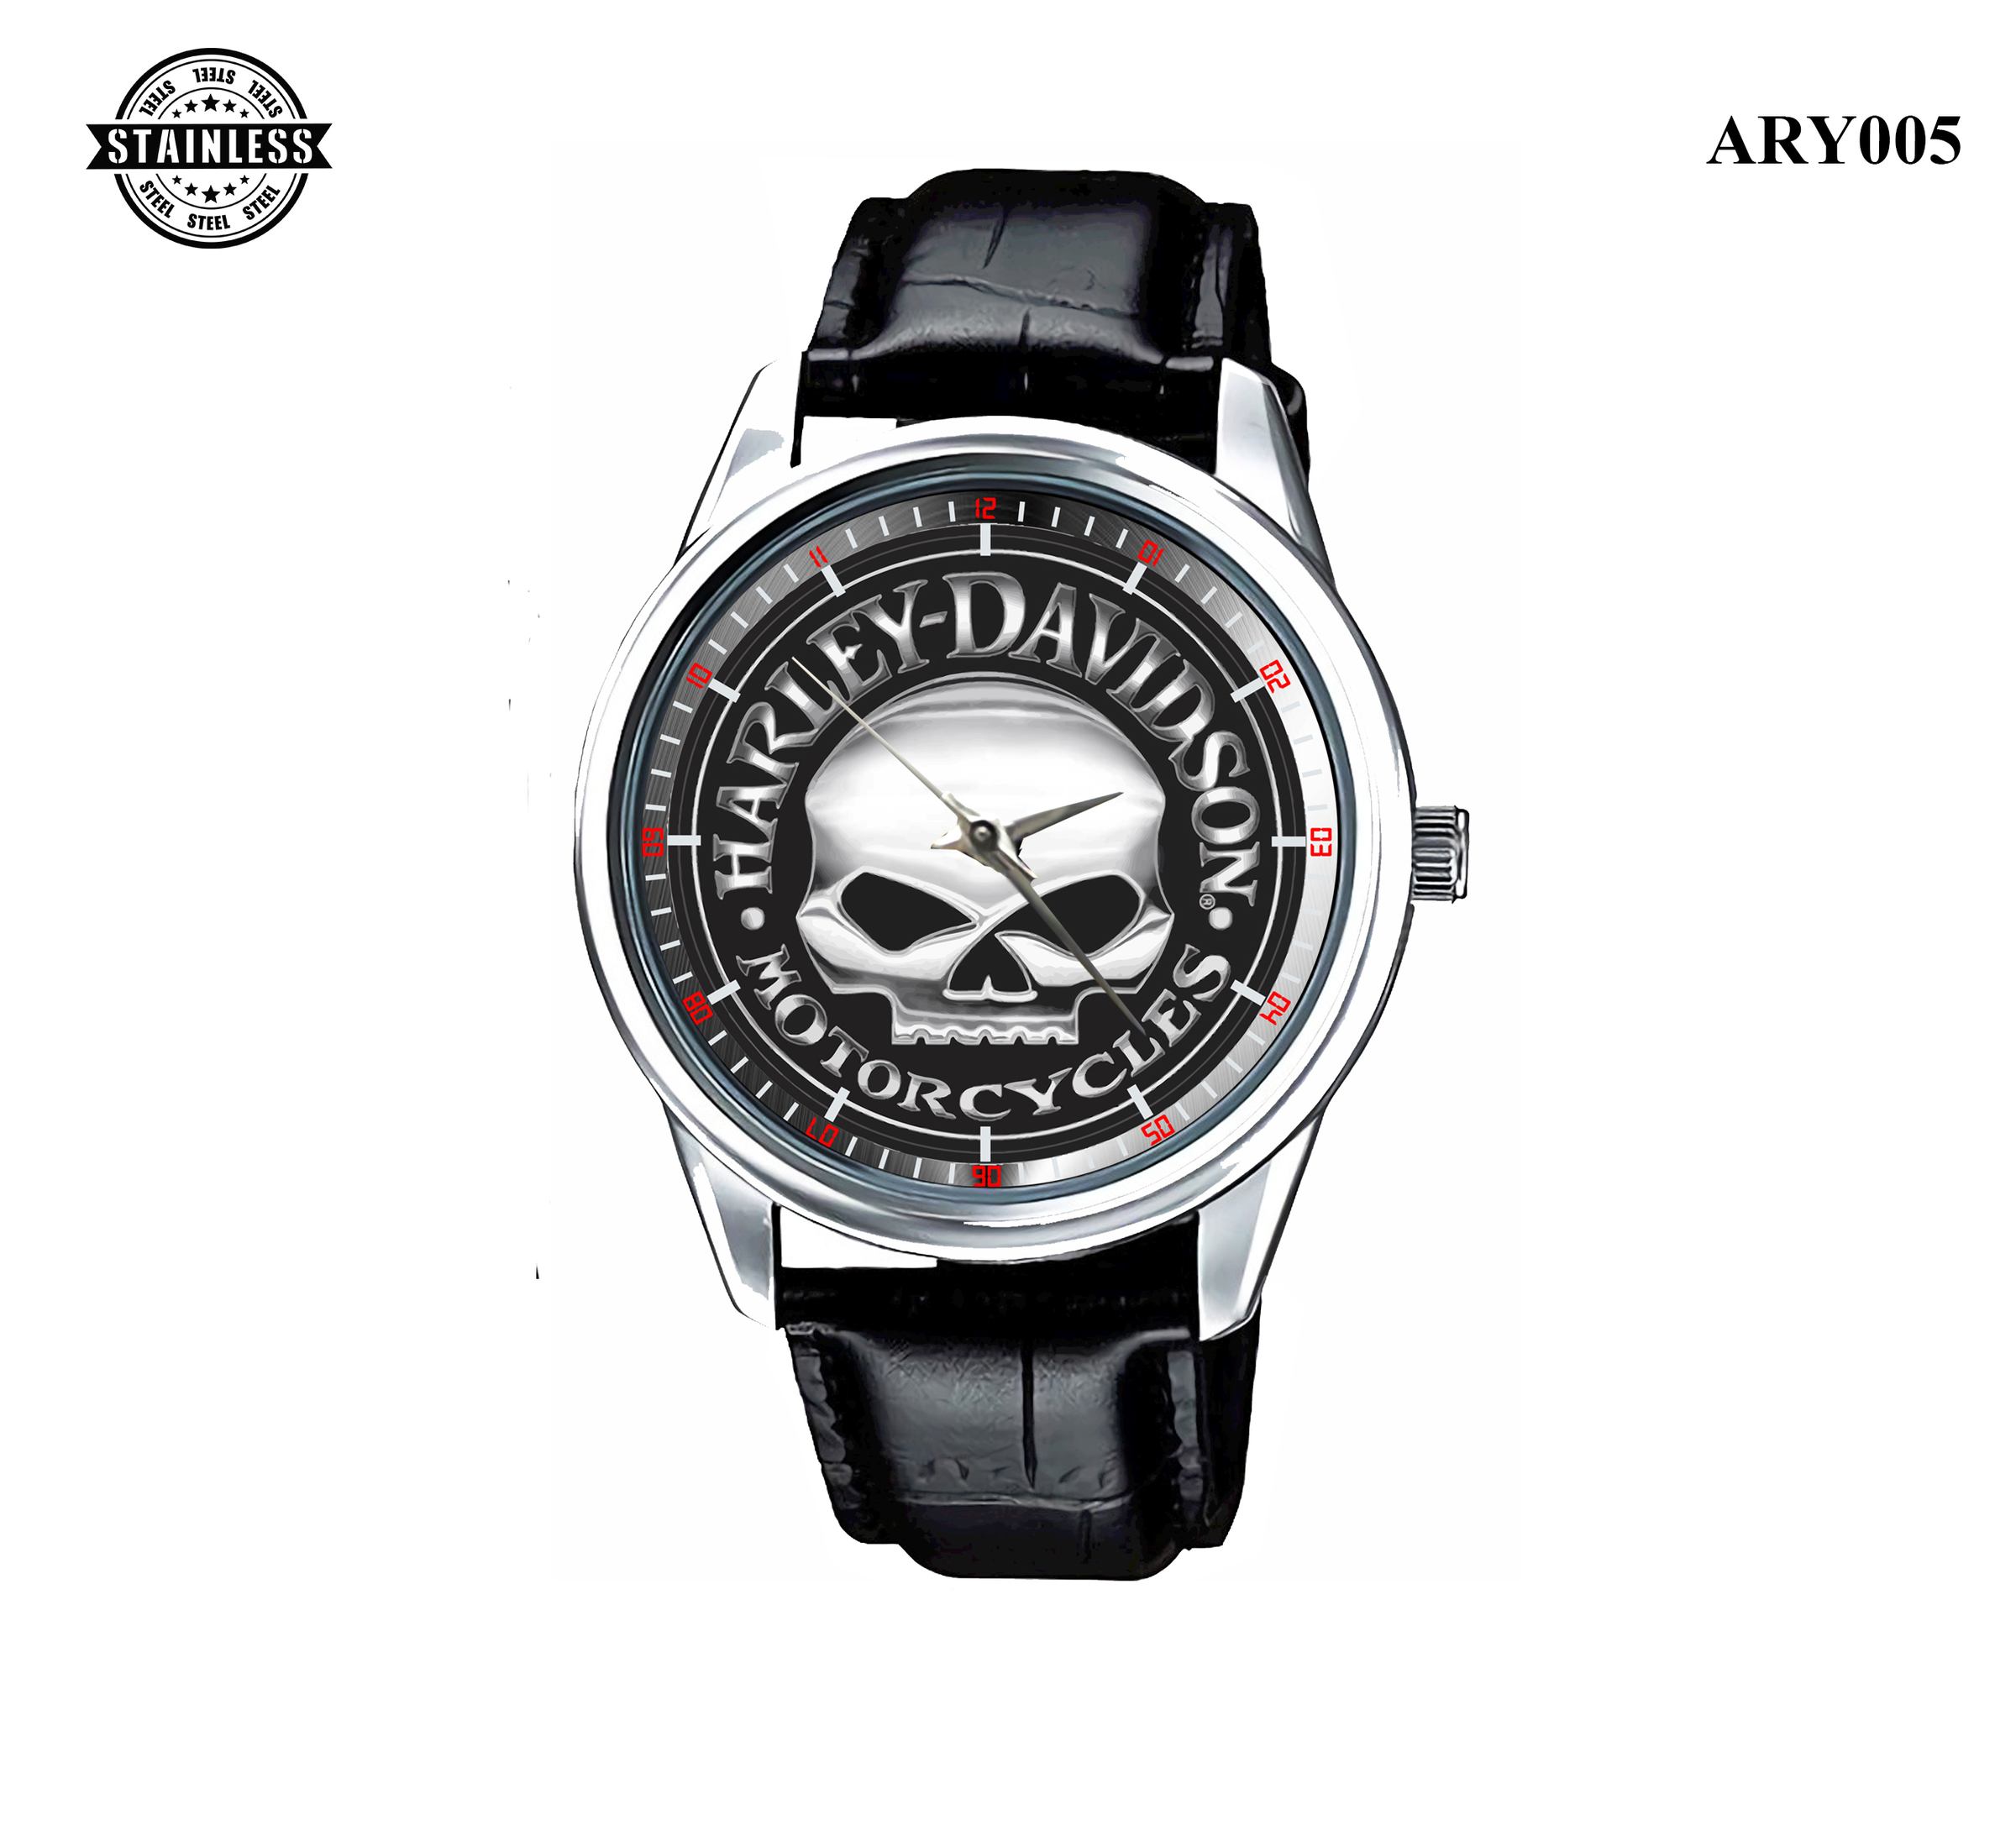 3.Limited! Vintage Harley Davidson_Motor Cycles_Sport Metal Watch.jpg